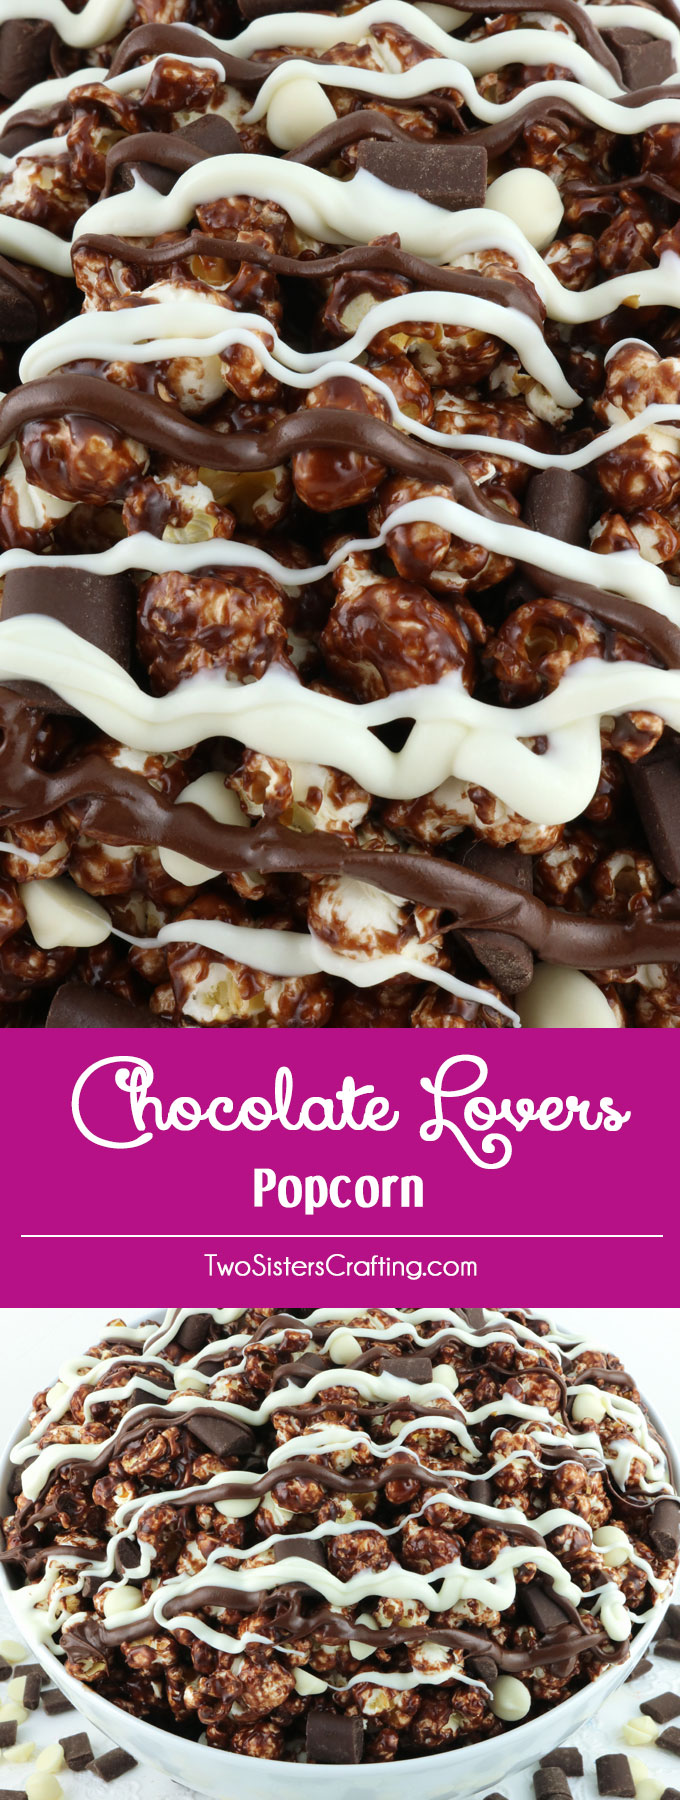 Chocolate Lovers Popcorn - sweet and salty popcorn covered in chocolate, marshmallows and yummy white and dark chocolate candy. A delicious Chocolate dessert that is super easy to make! It would be a great anytime snack or family movie night dessert! Pin this delicious popcorn treat for later and follow us for more great Popcorn Recipe Ideas.